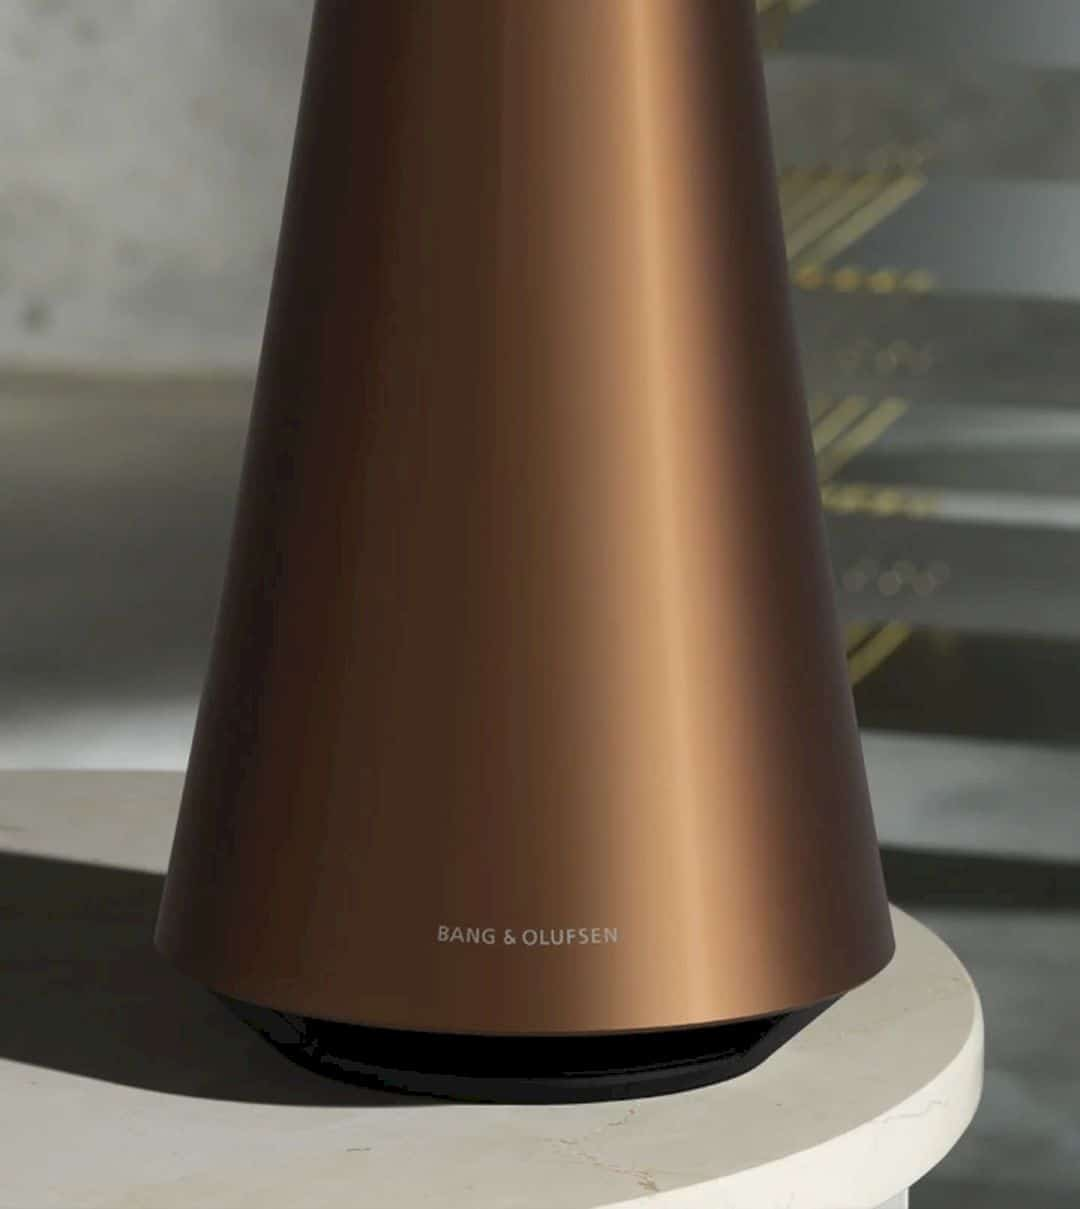 Beosound 1 With The Google Assistant 2